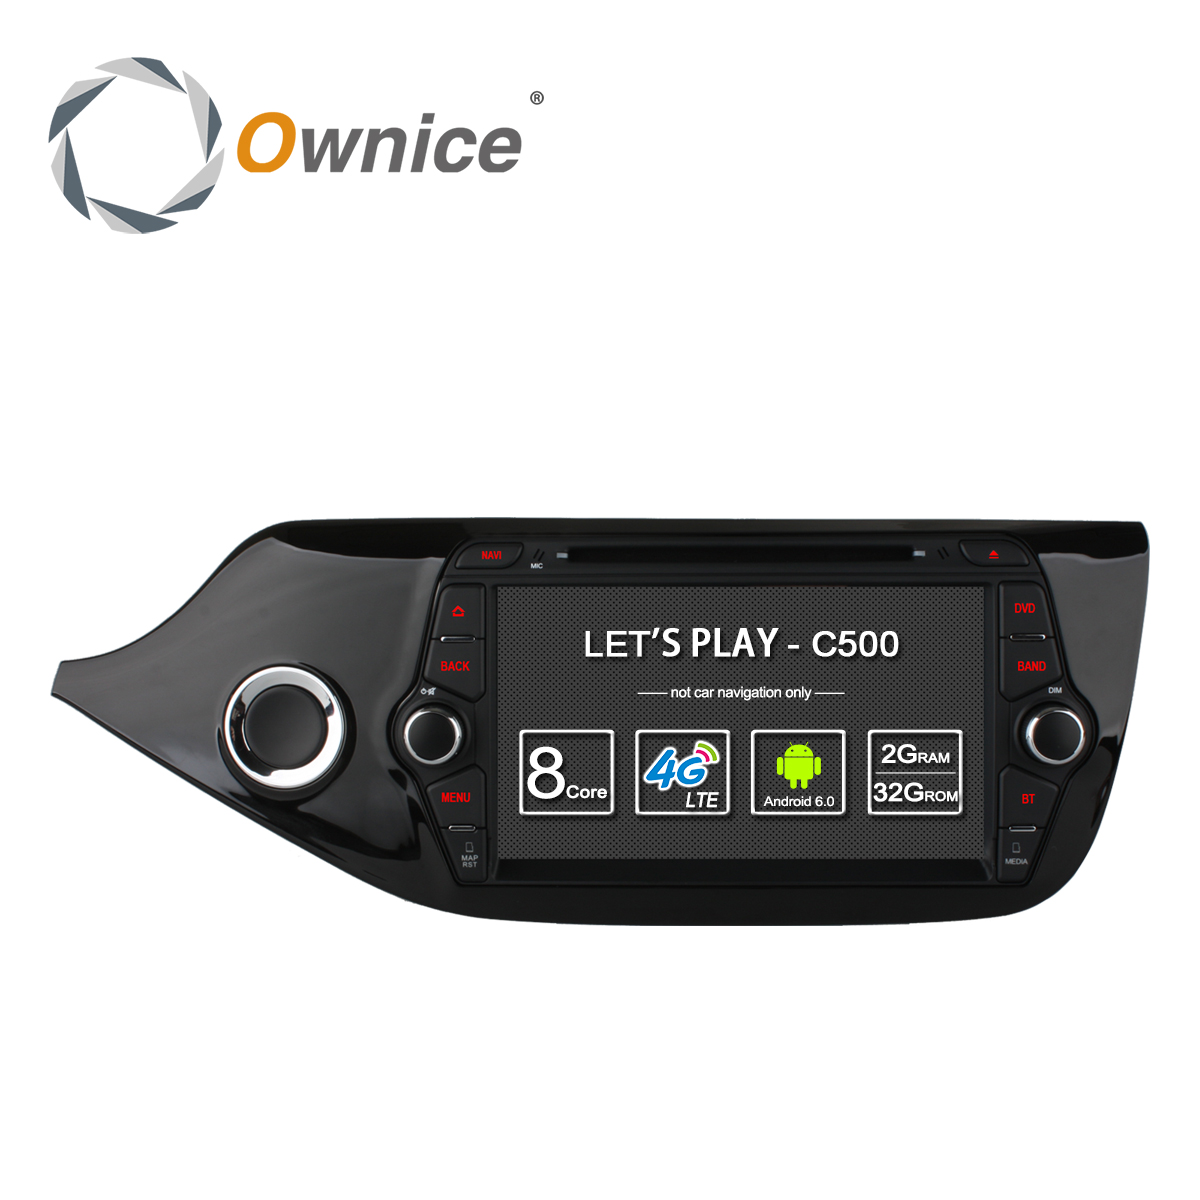 Ownice C500 4G SIM LTE Octa 8 Core Android 6 0 For Kia CEED 2013 2015